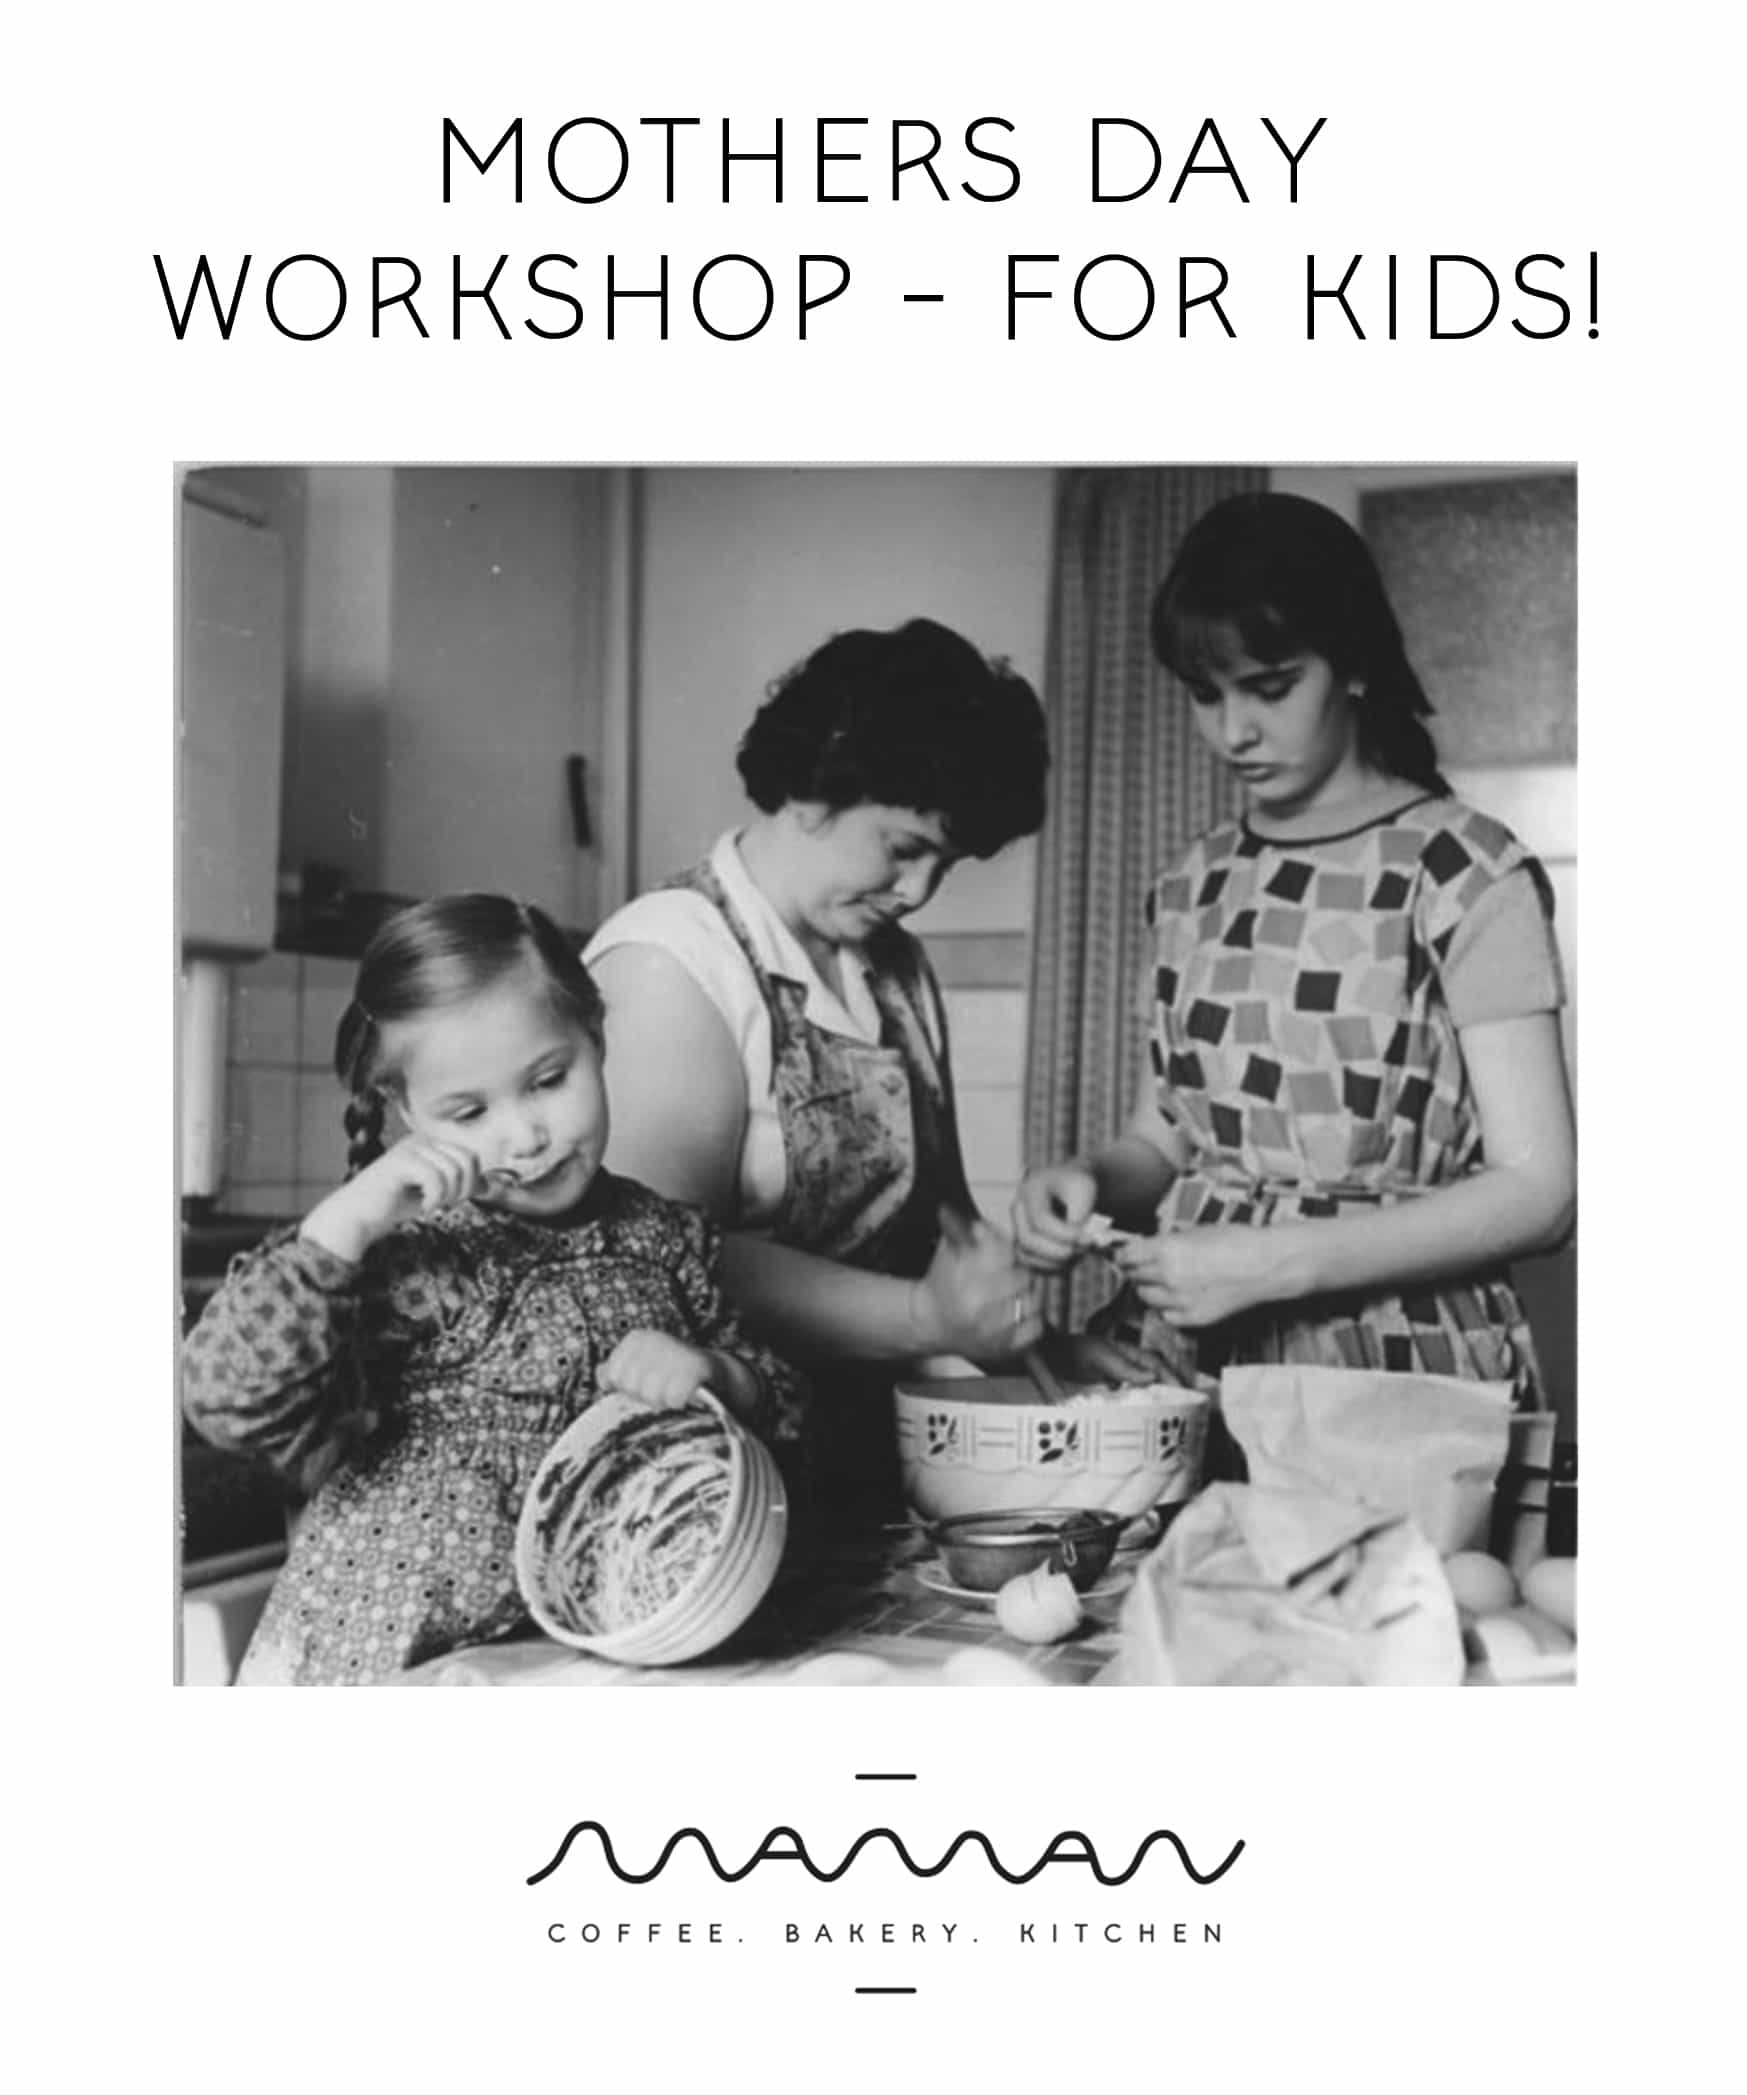 mothers day workshop for kids - greenpoint